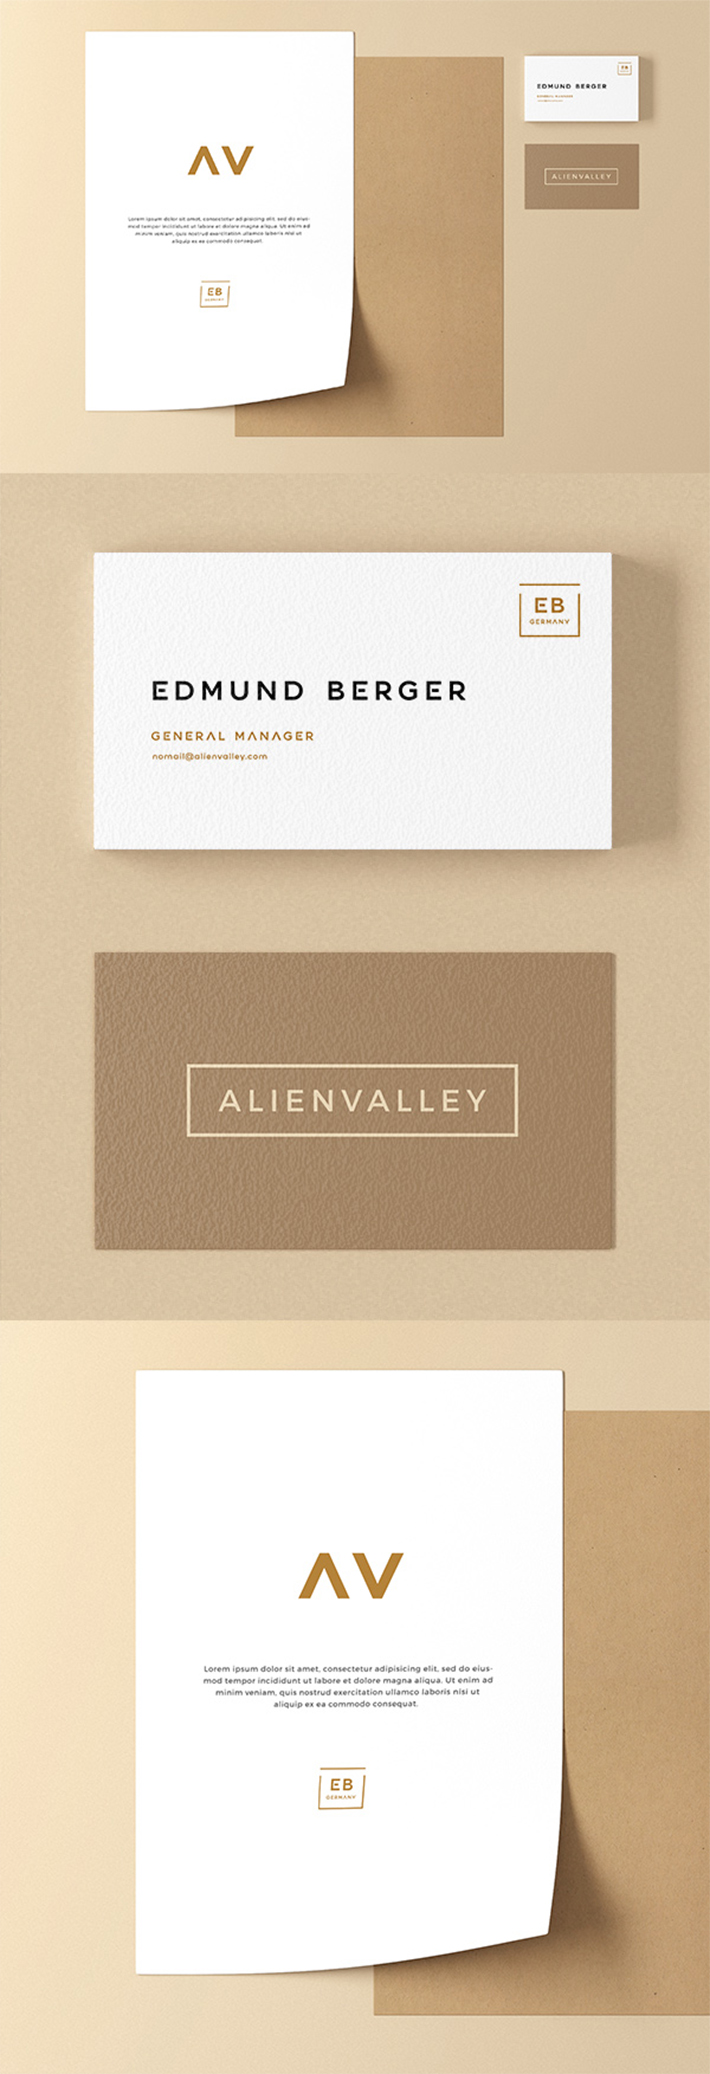 Simple Creative Stationery Mockup